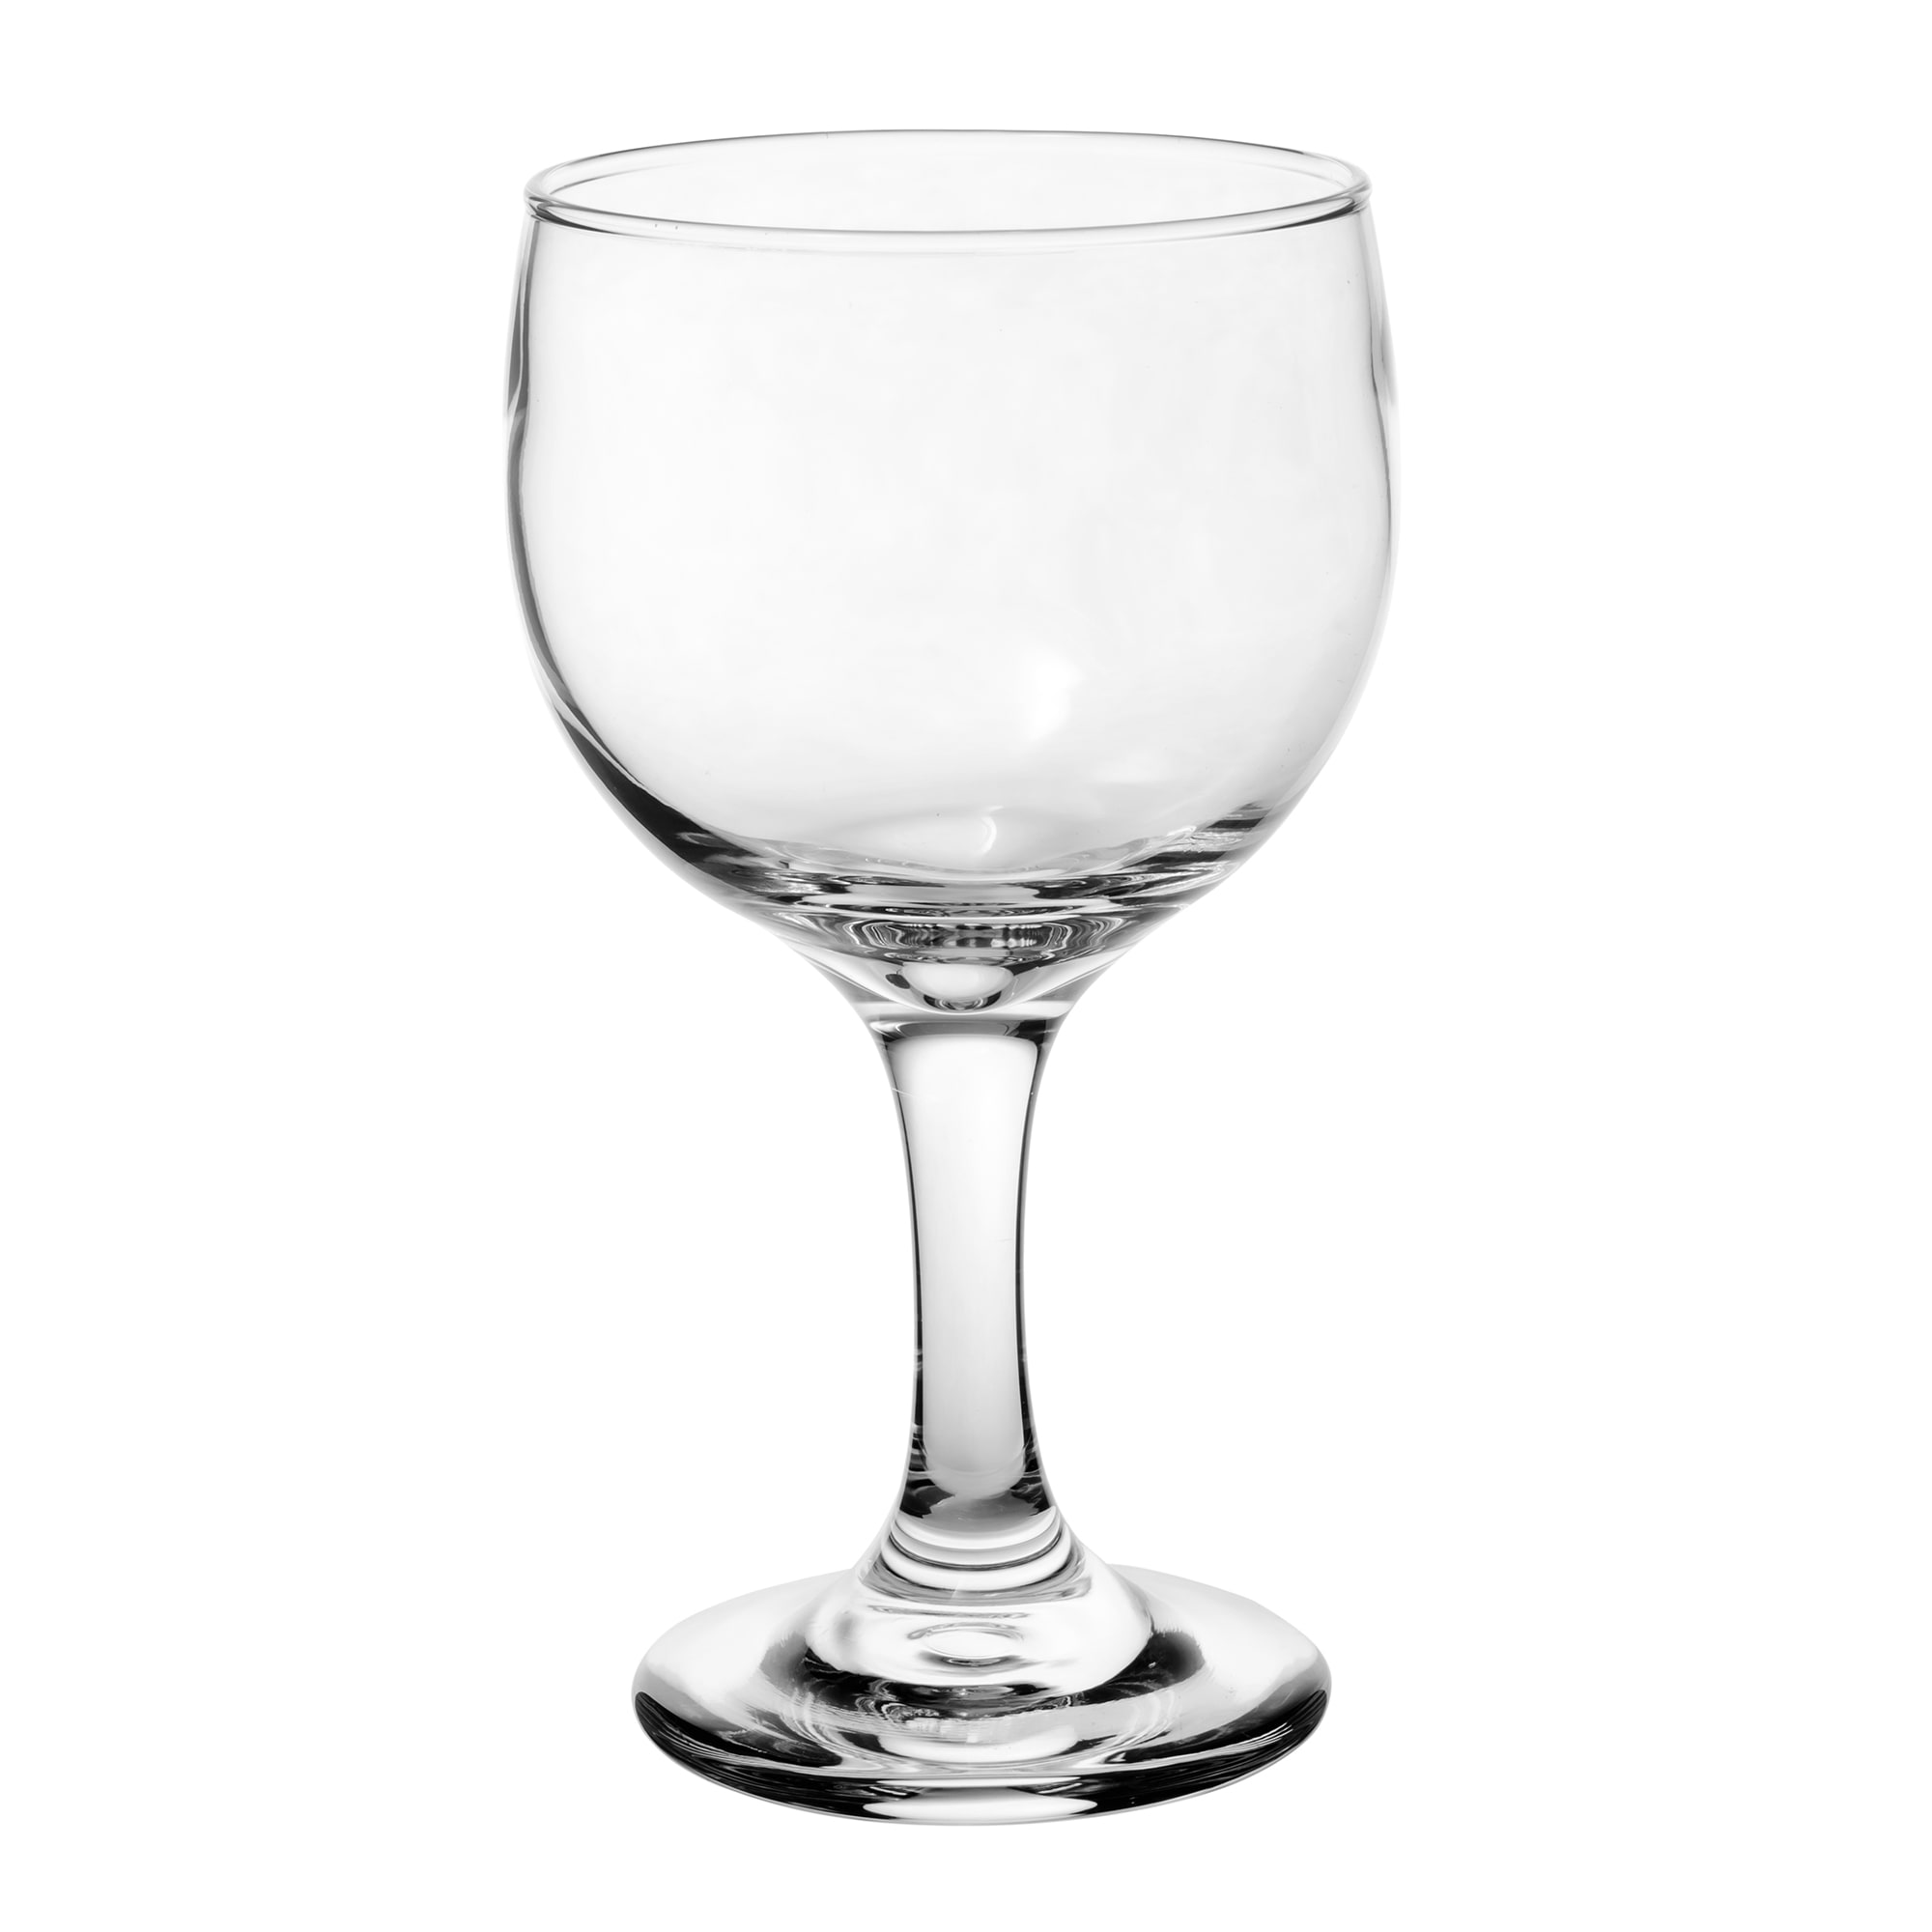 Libbey 3757 10.5-oz Embassy Wine Glass - Safedge Rim & Foot Guarantee